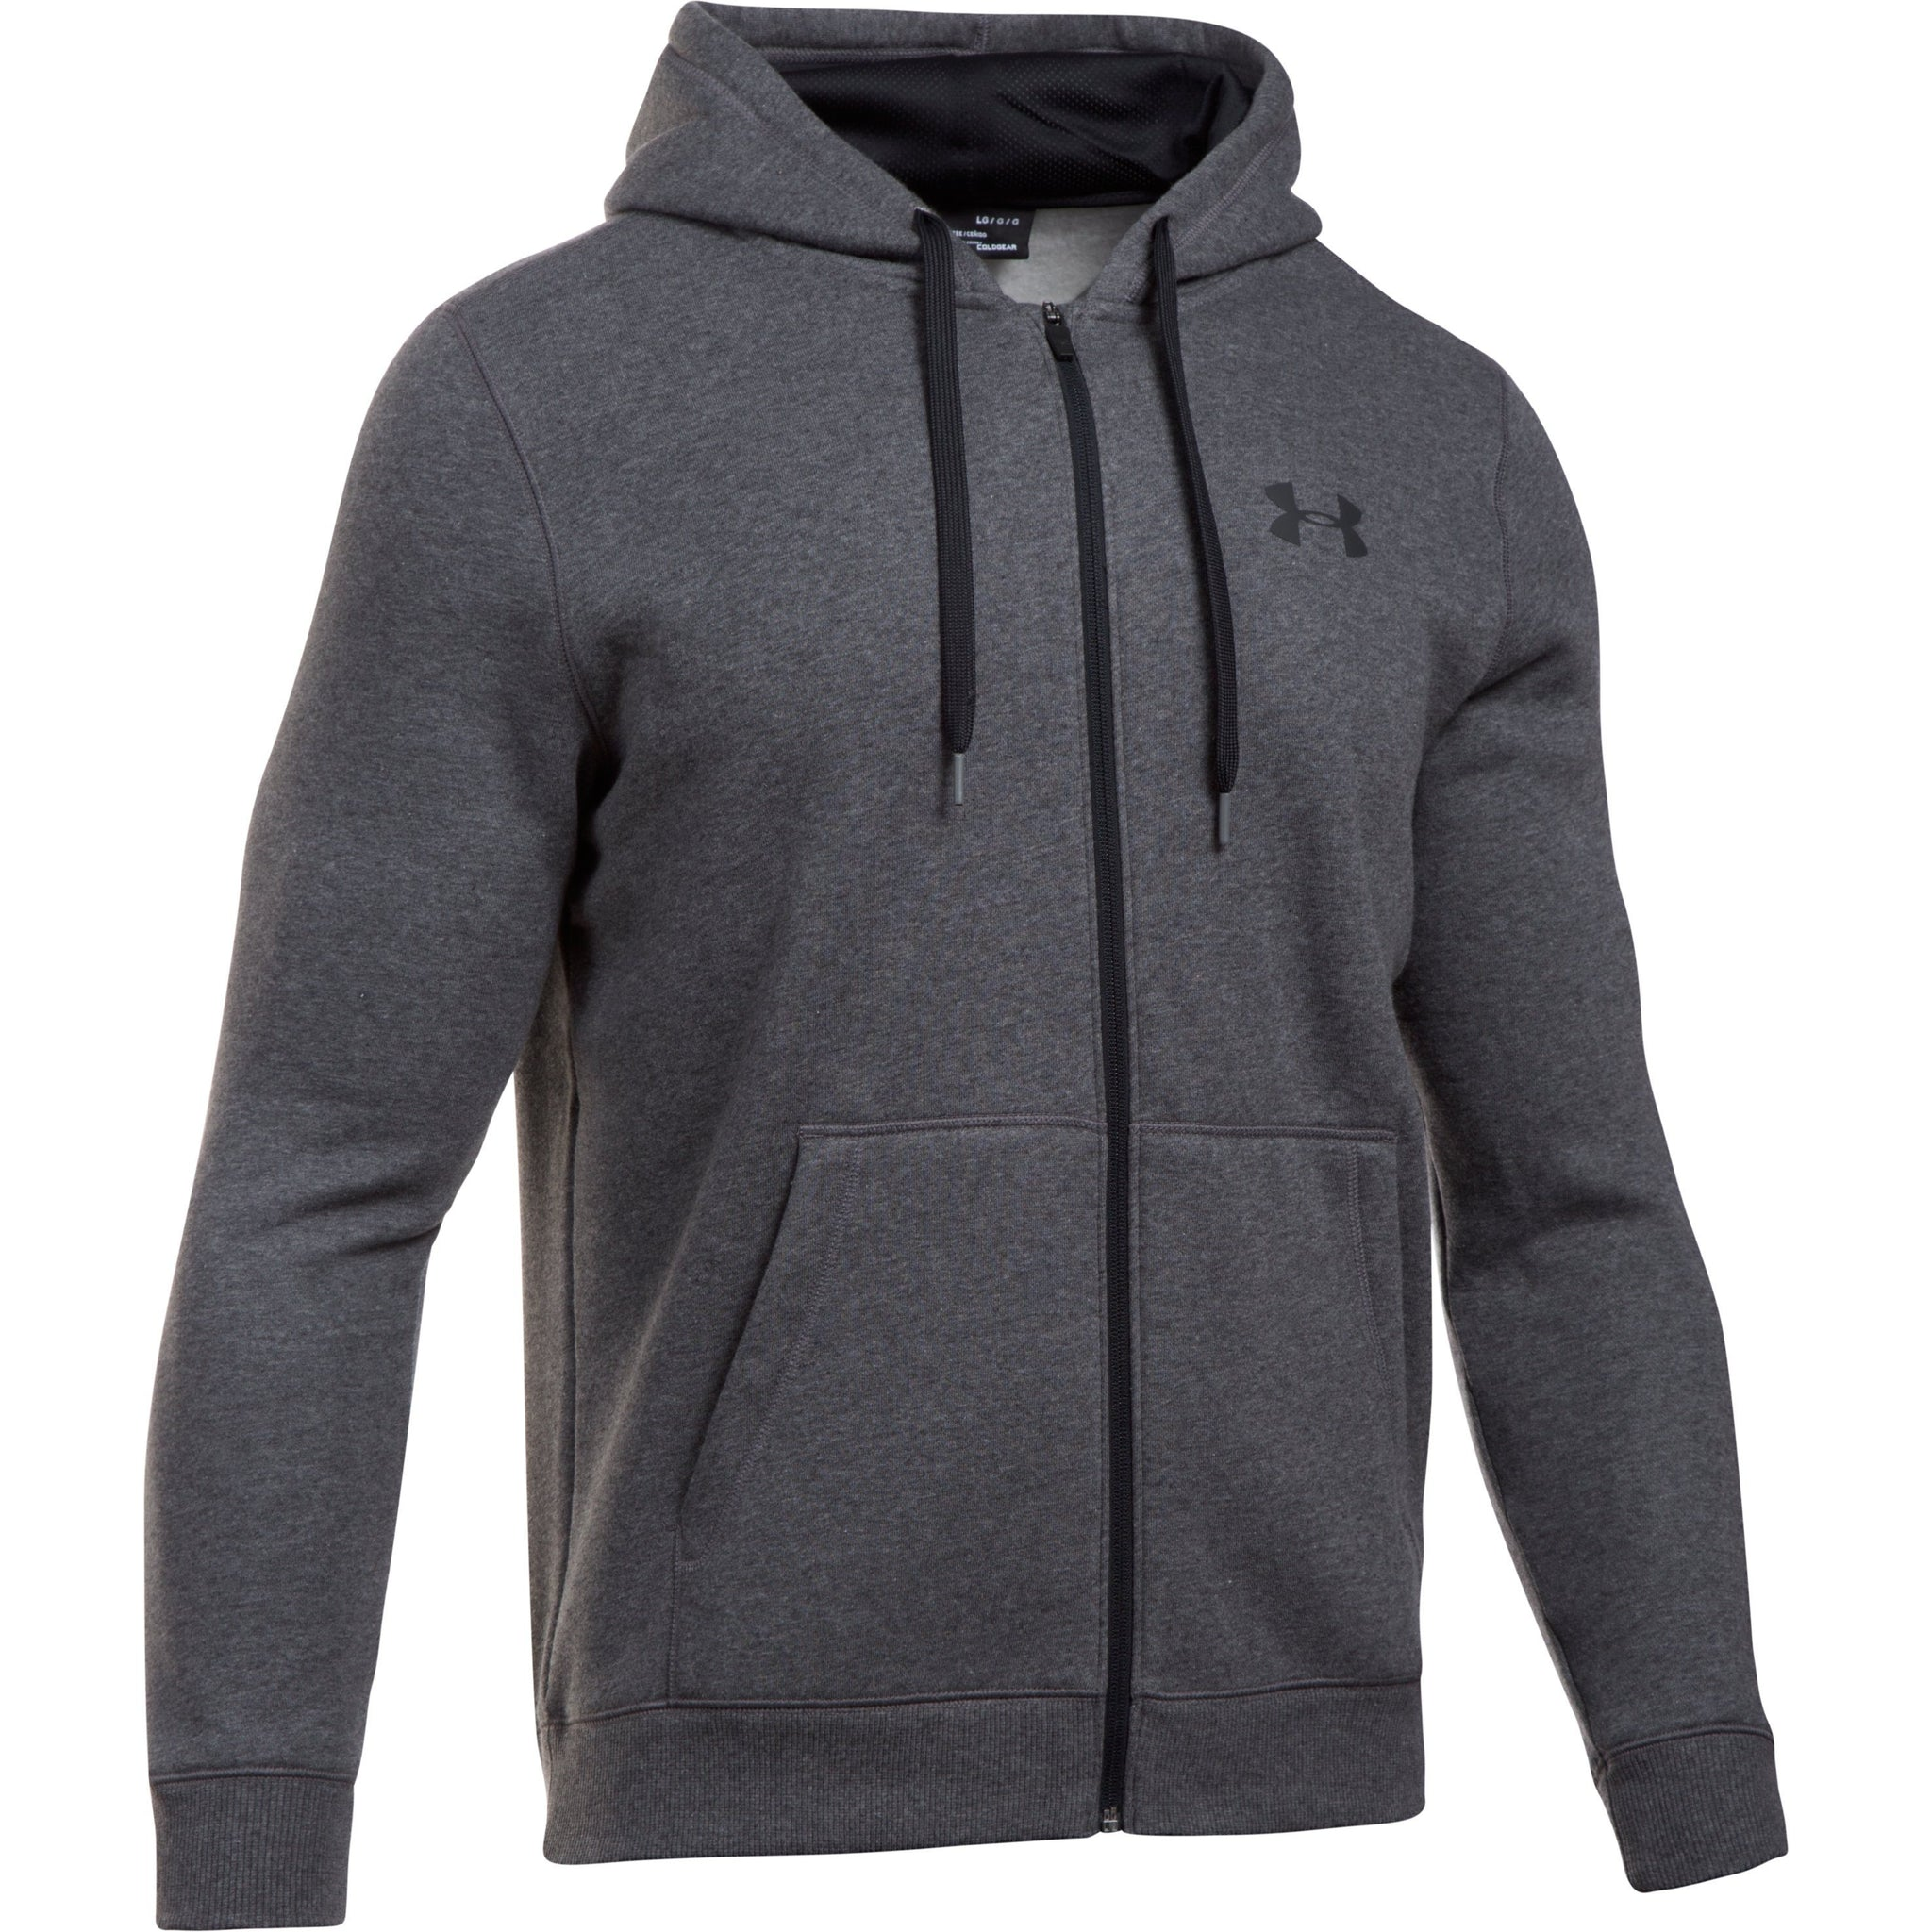 Under Armour Rival Fitted Zip - Carbon Heather